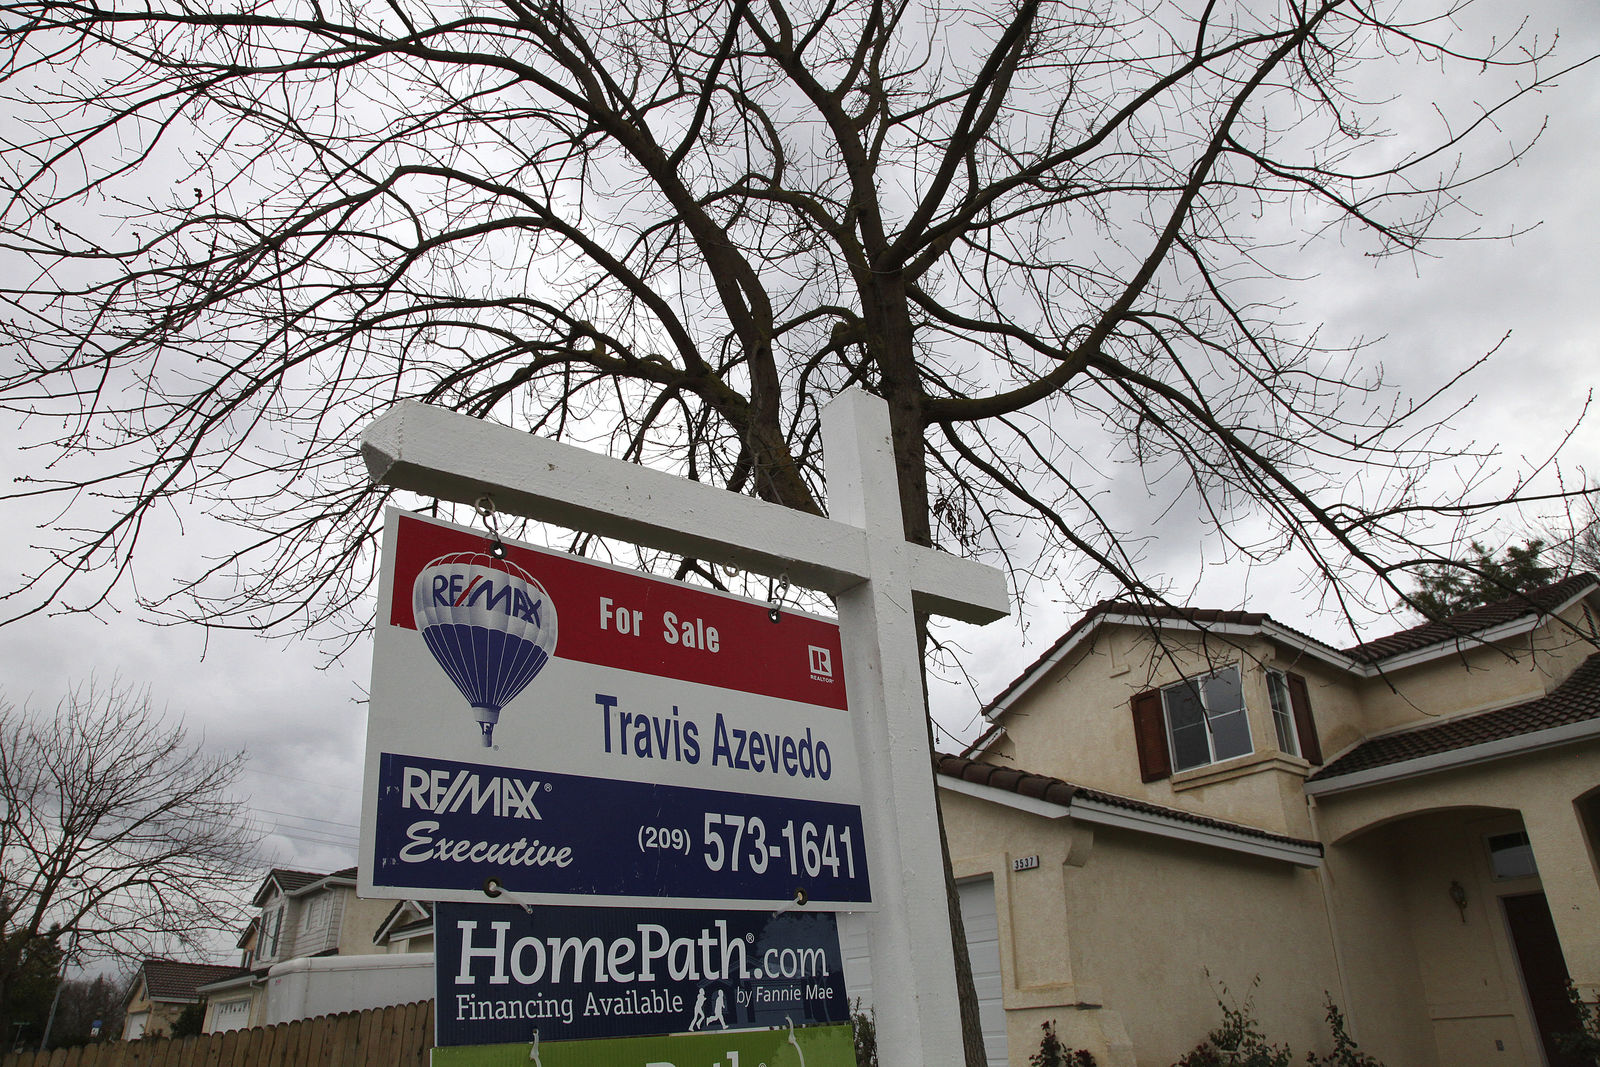 FILE -- In this Feb. 29. 2012 file photo a for sale sign is seen on the lawn of a foreclosed home in Stockton, Calif. (AP Photo/Ben Margot, File)